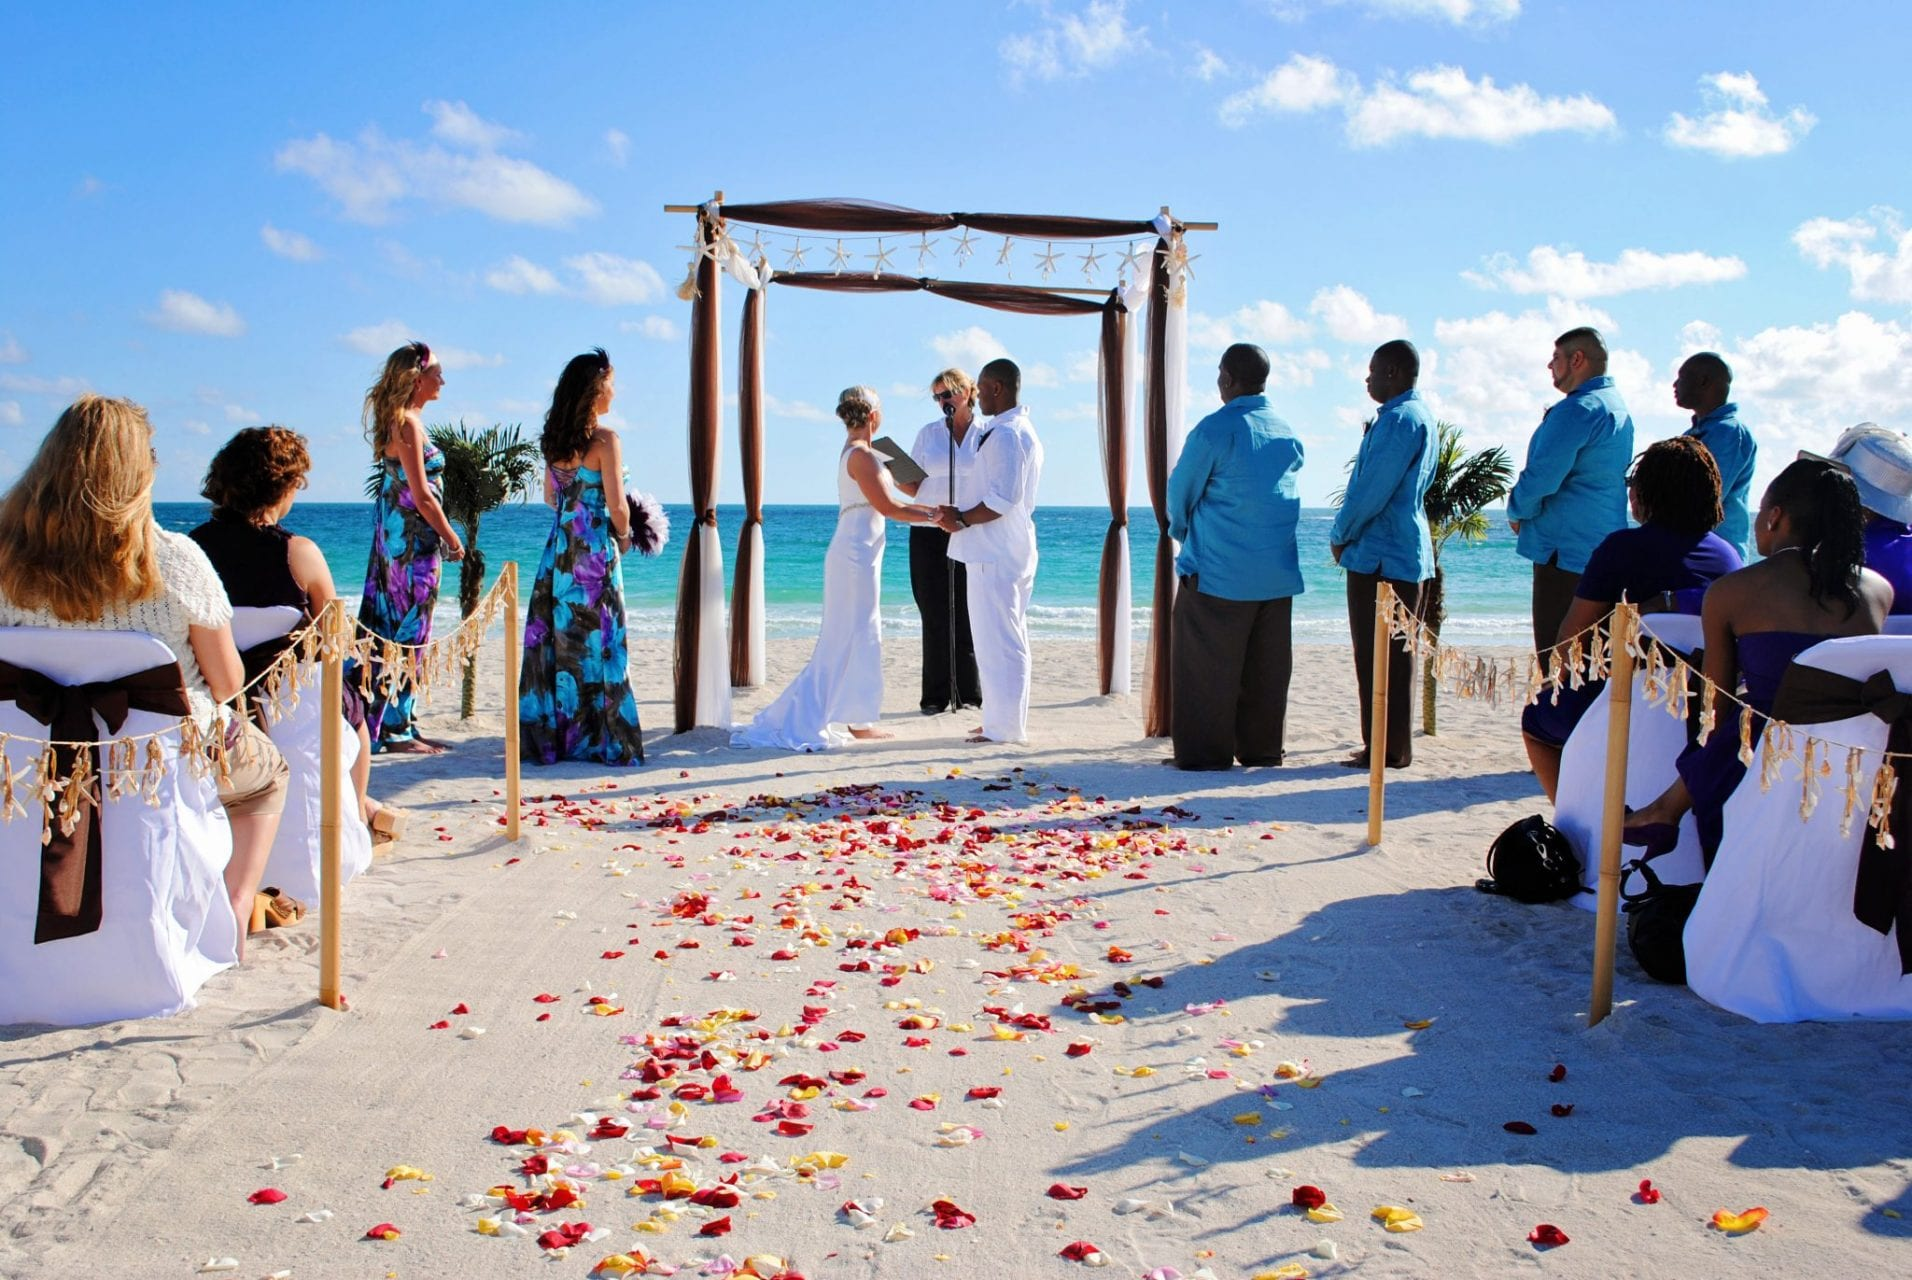 Couple saying vows with rose petals by the ocean in Miami